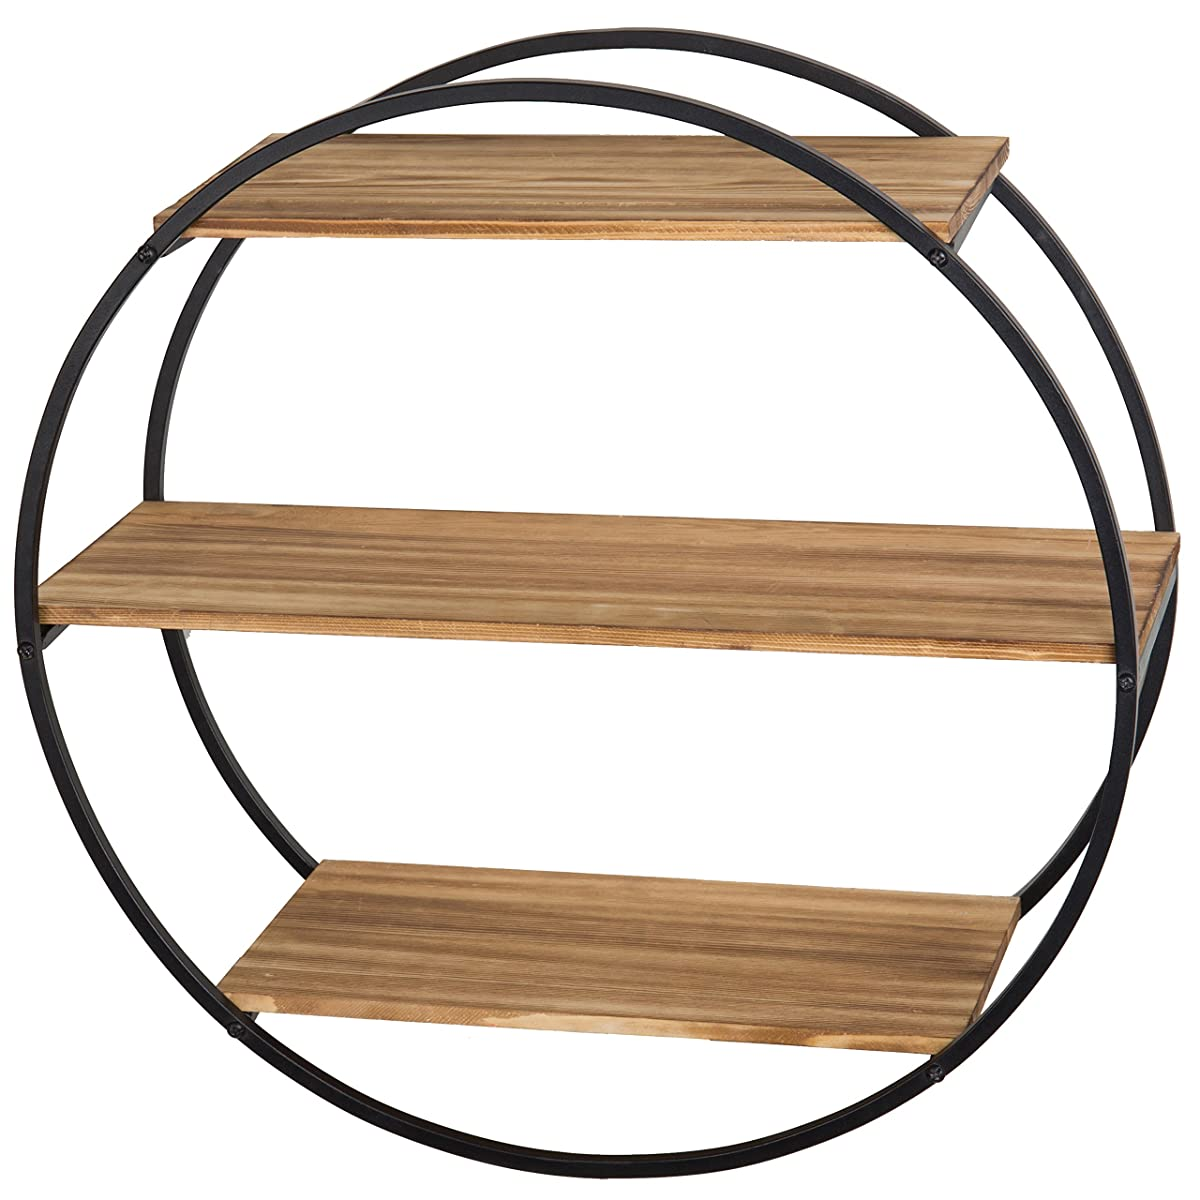 MyGift Industrial Modern 22-Inch Circle-Frame 3-Tier Floating Shelf